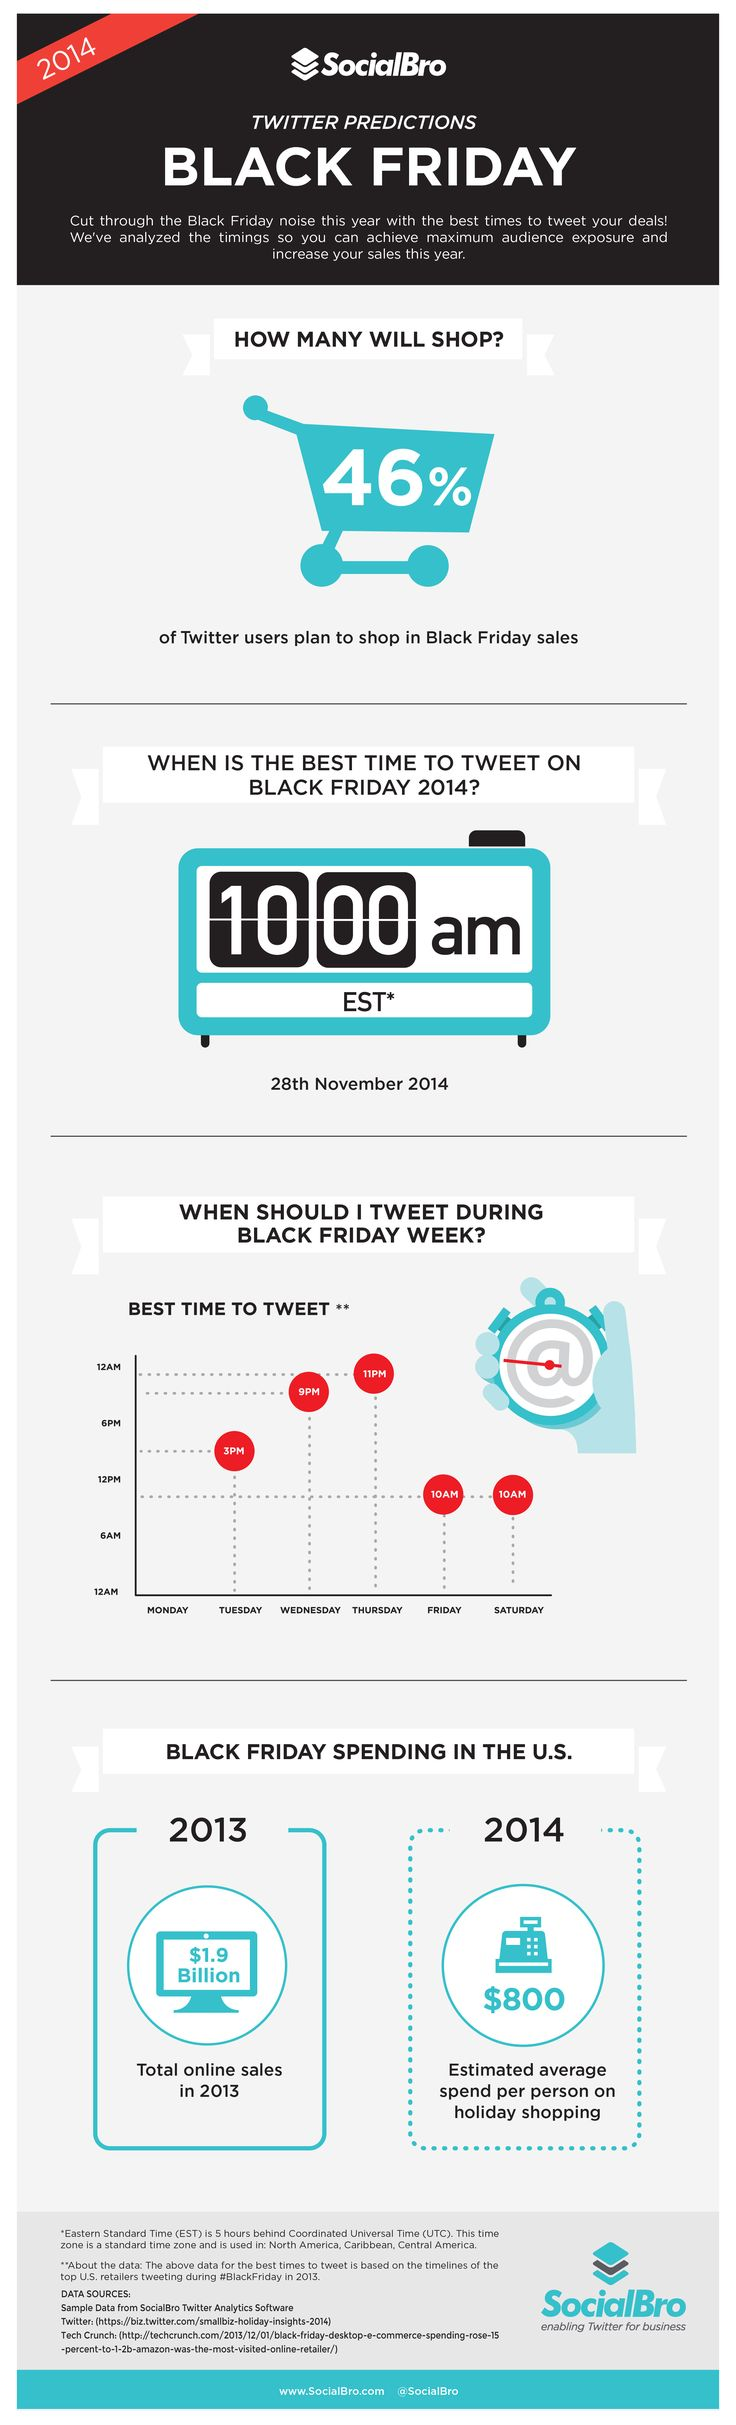 When is the Best Time to Tweet on Black Friday?